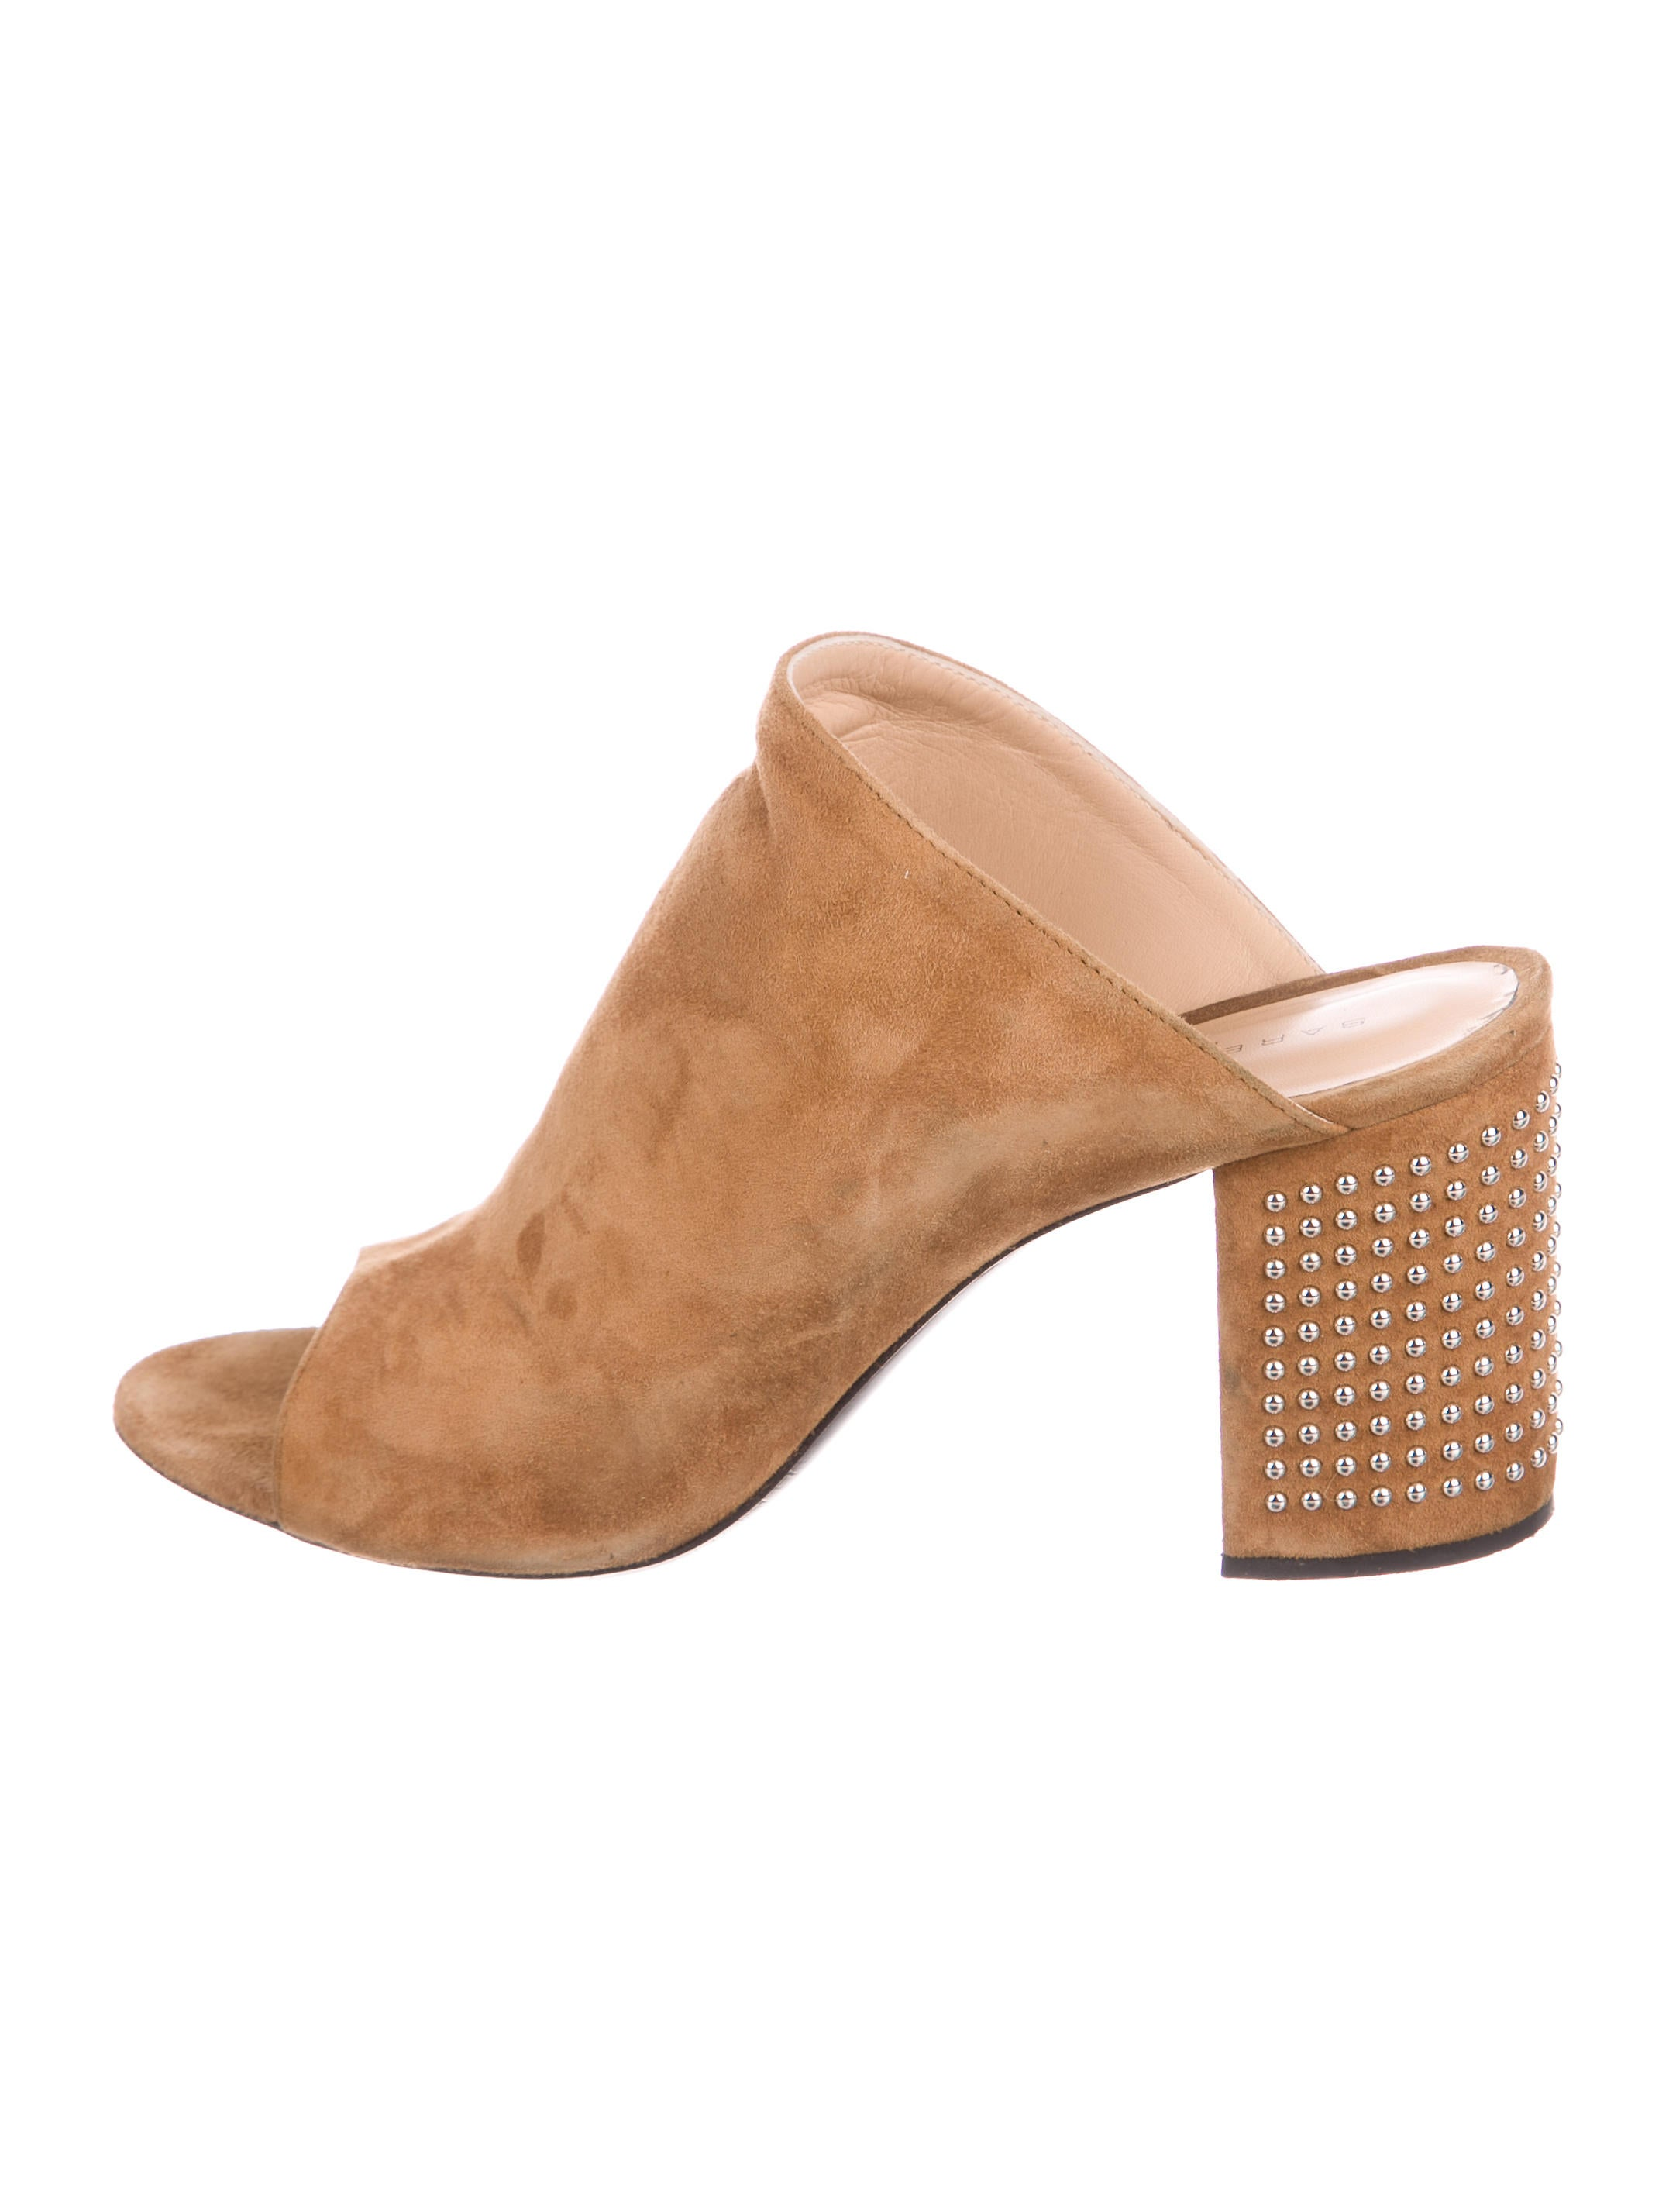 Barbara Bui Suede Studded Mules Cheapest sale free shipping good selling professional online T4JqiPFHo